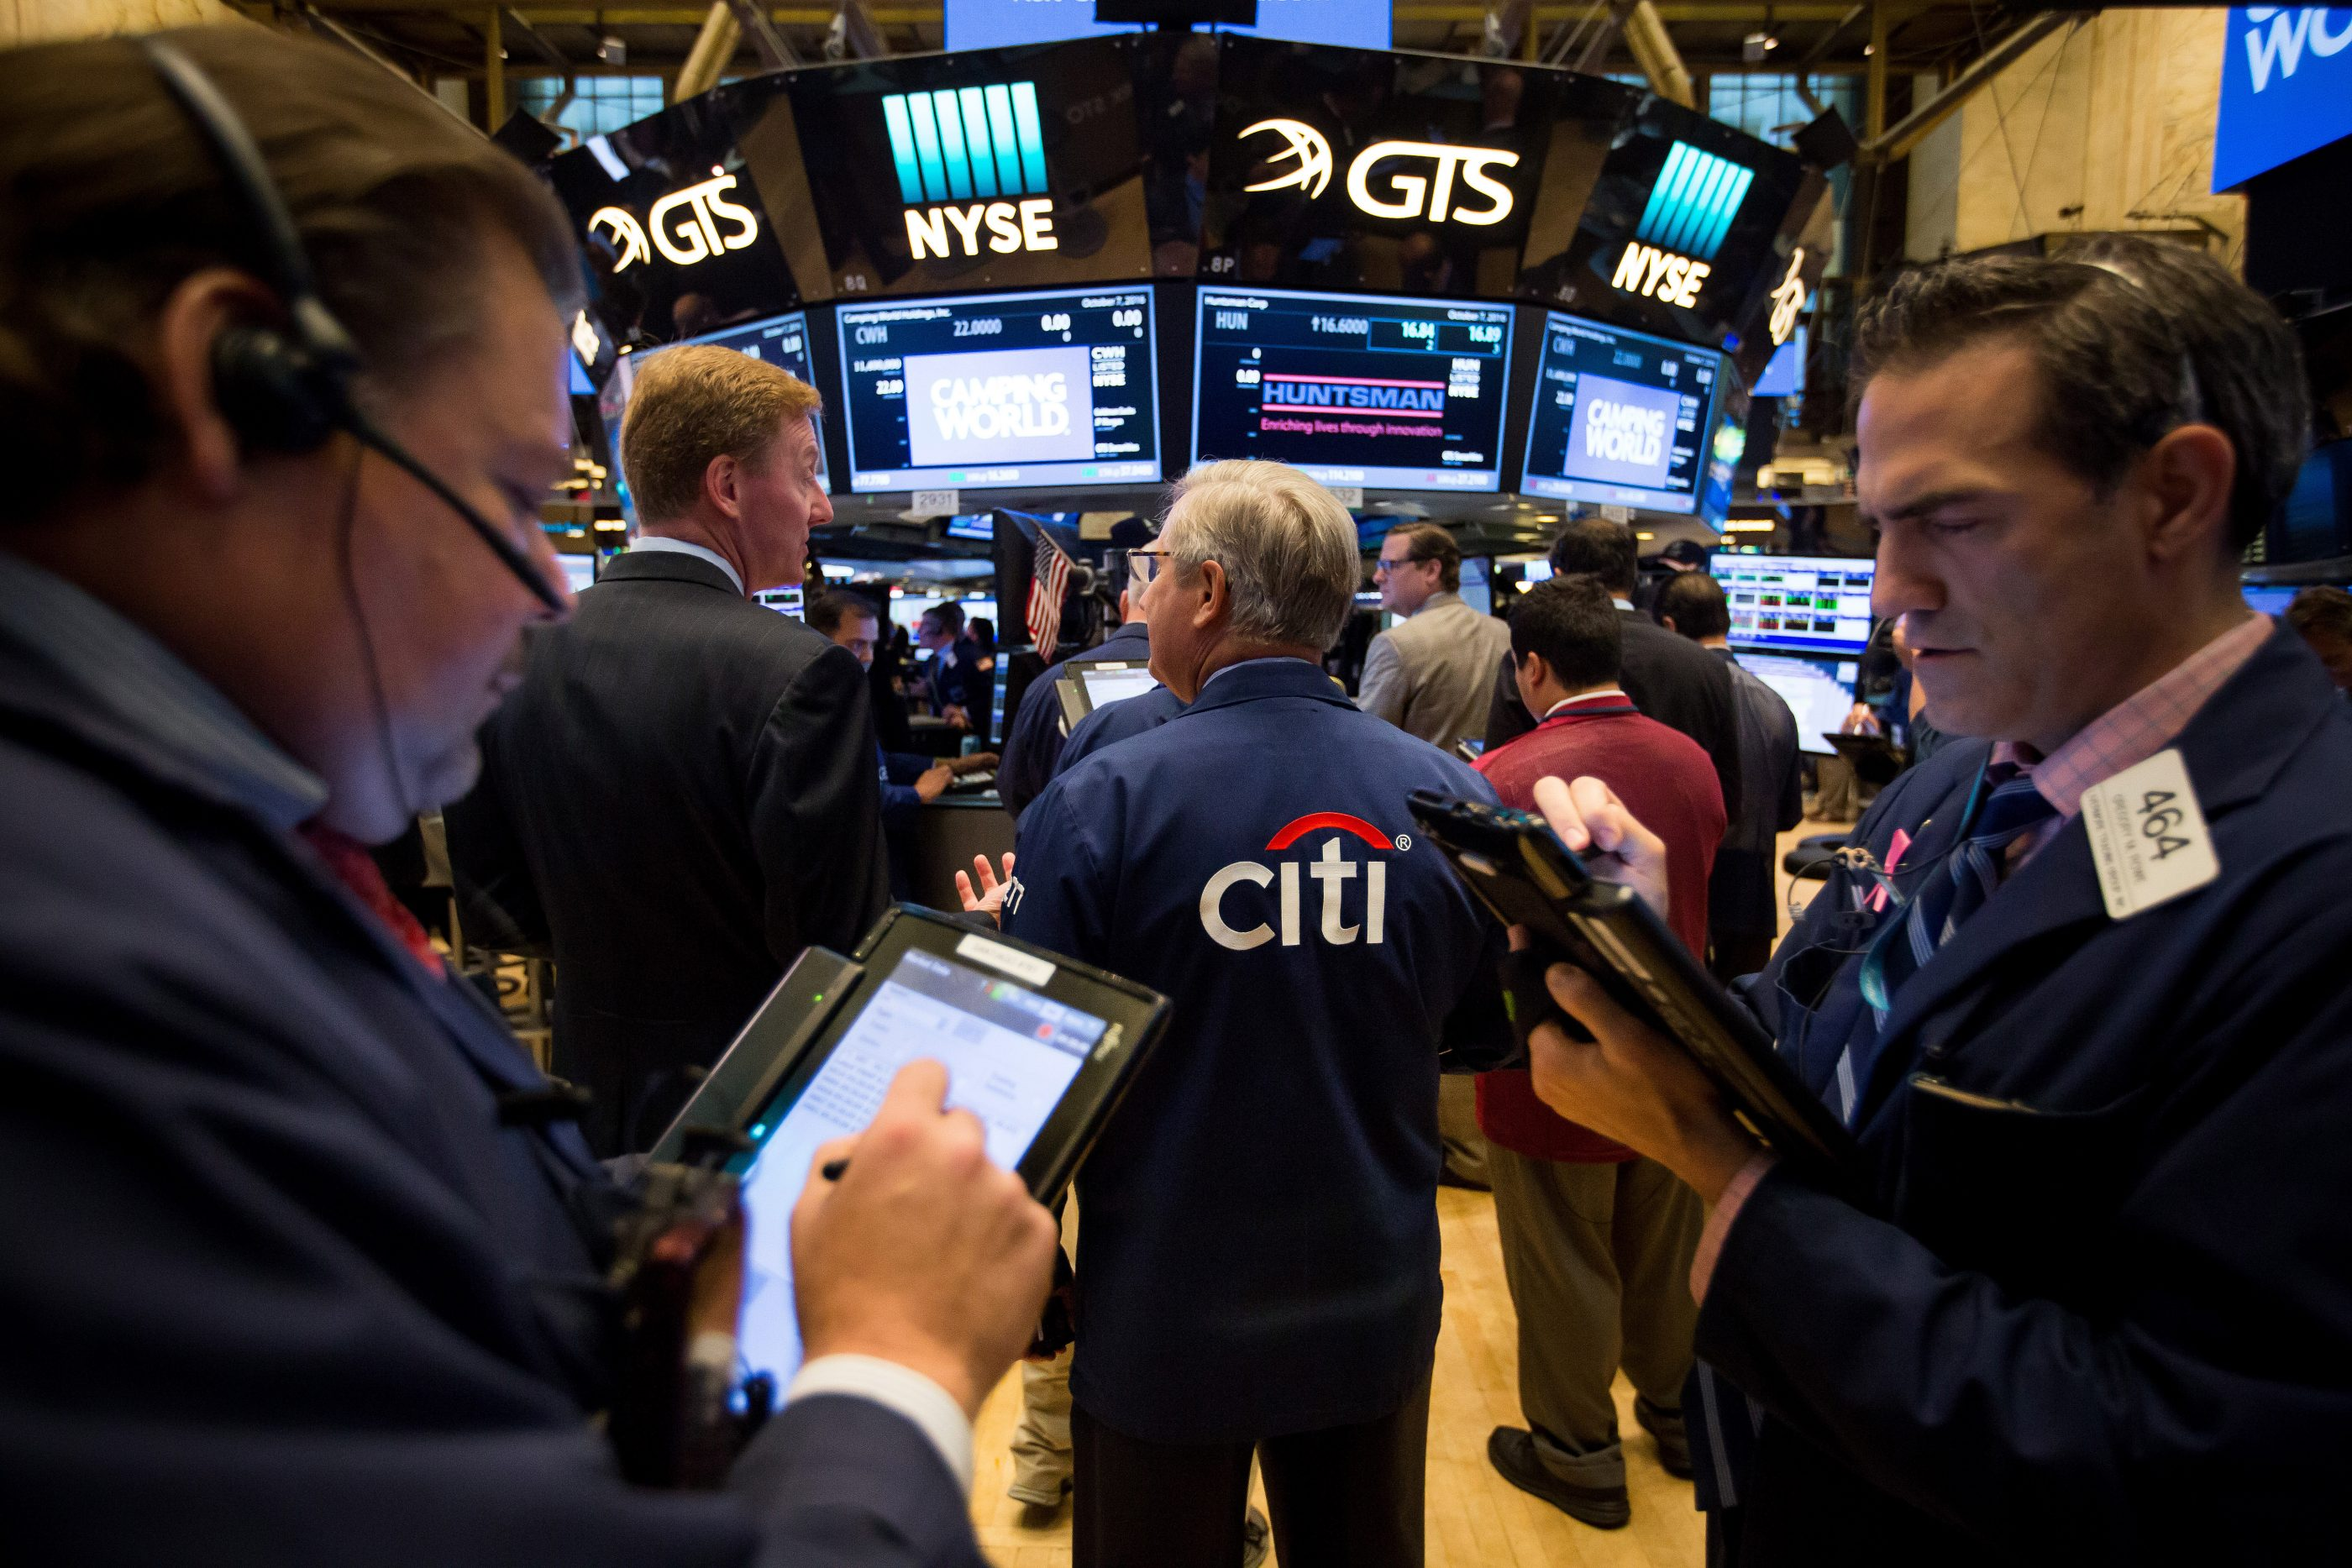 A trader wears a Citigroup jacket while working on the floor of the New York Stock Exchange.